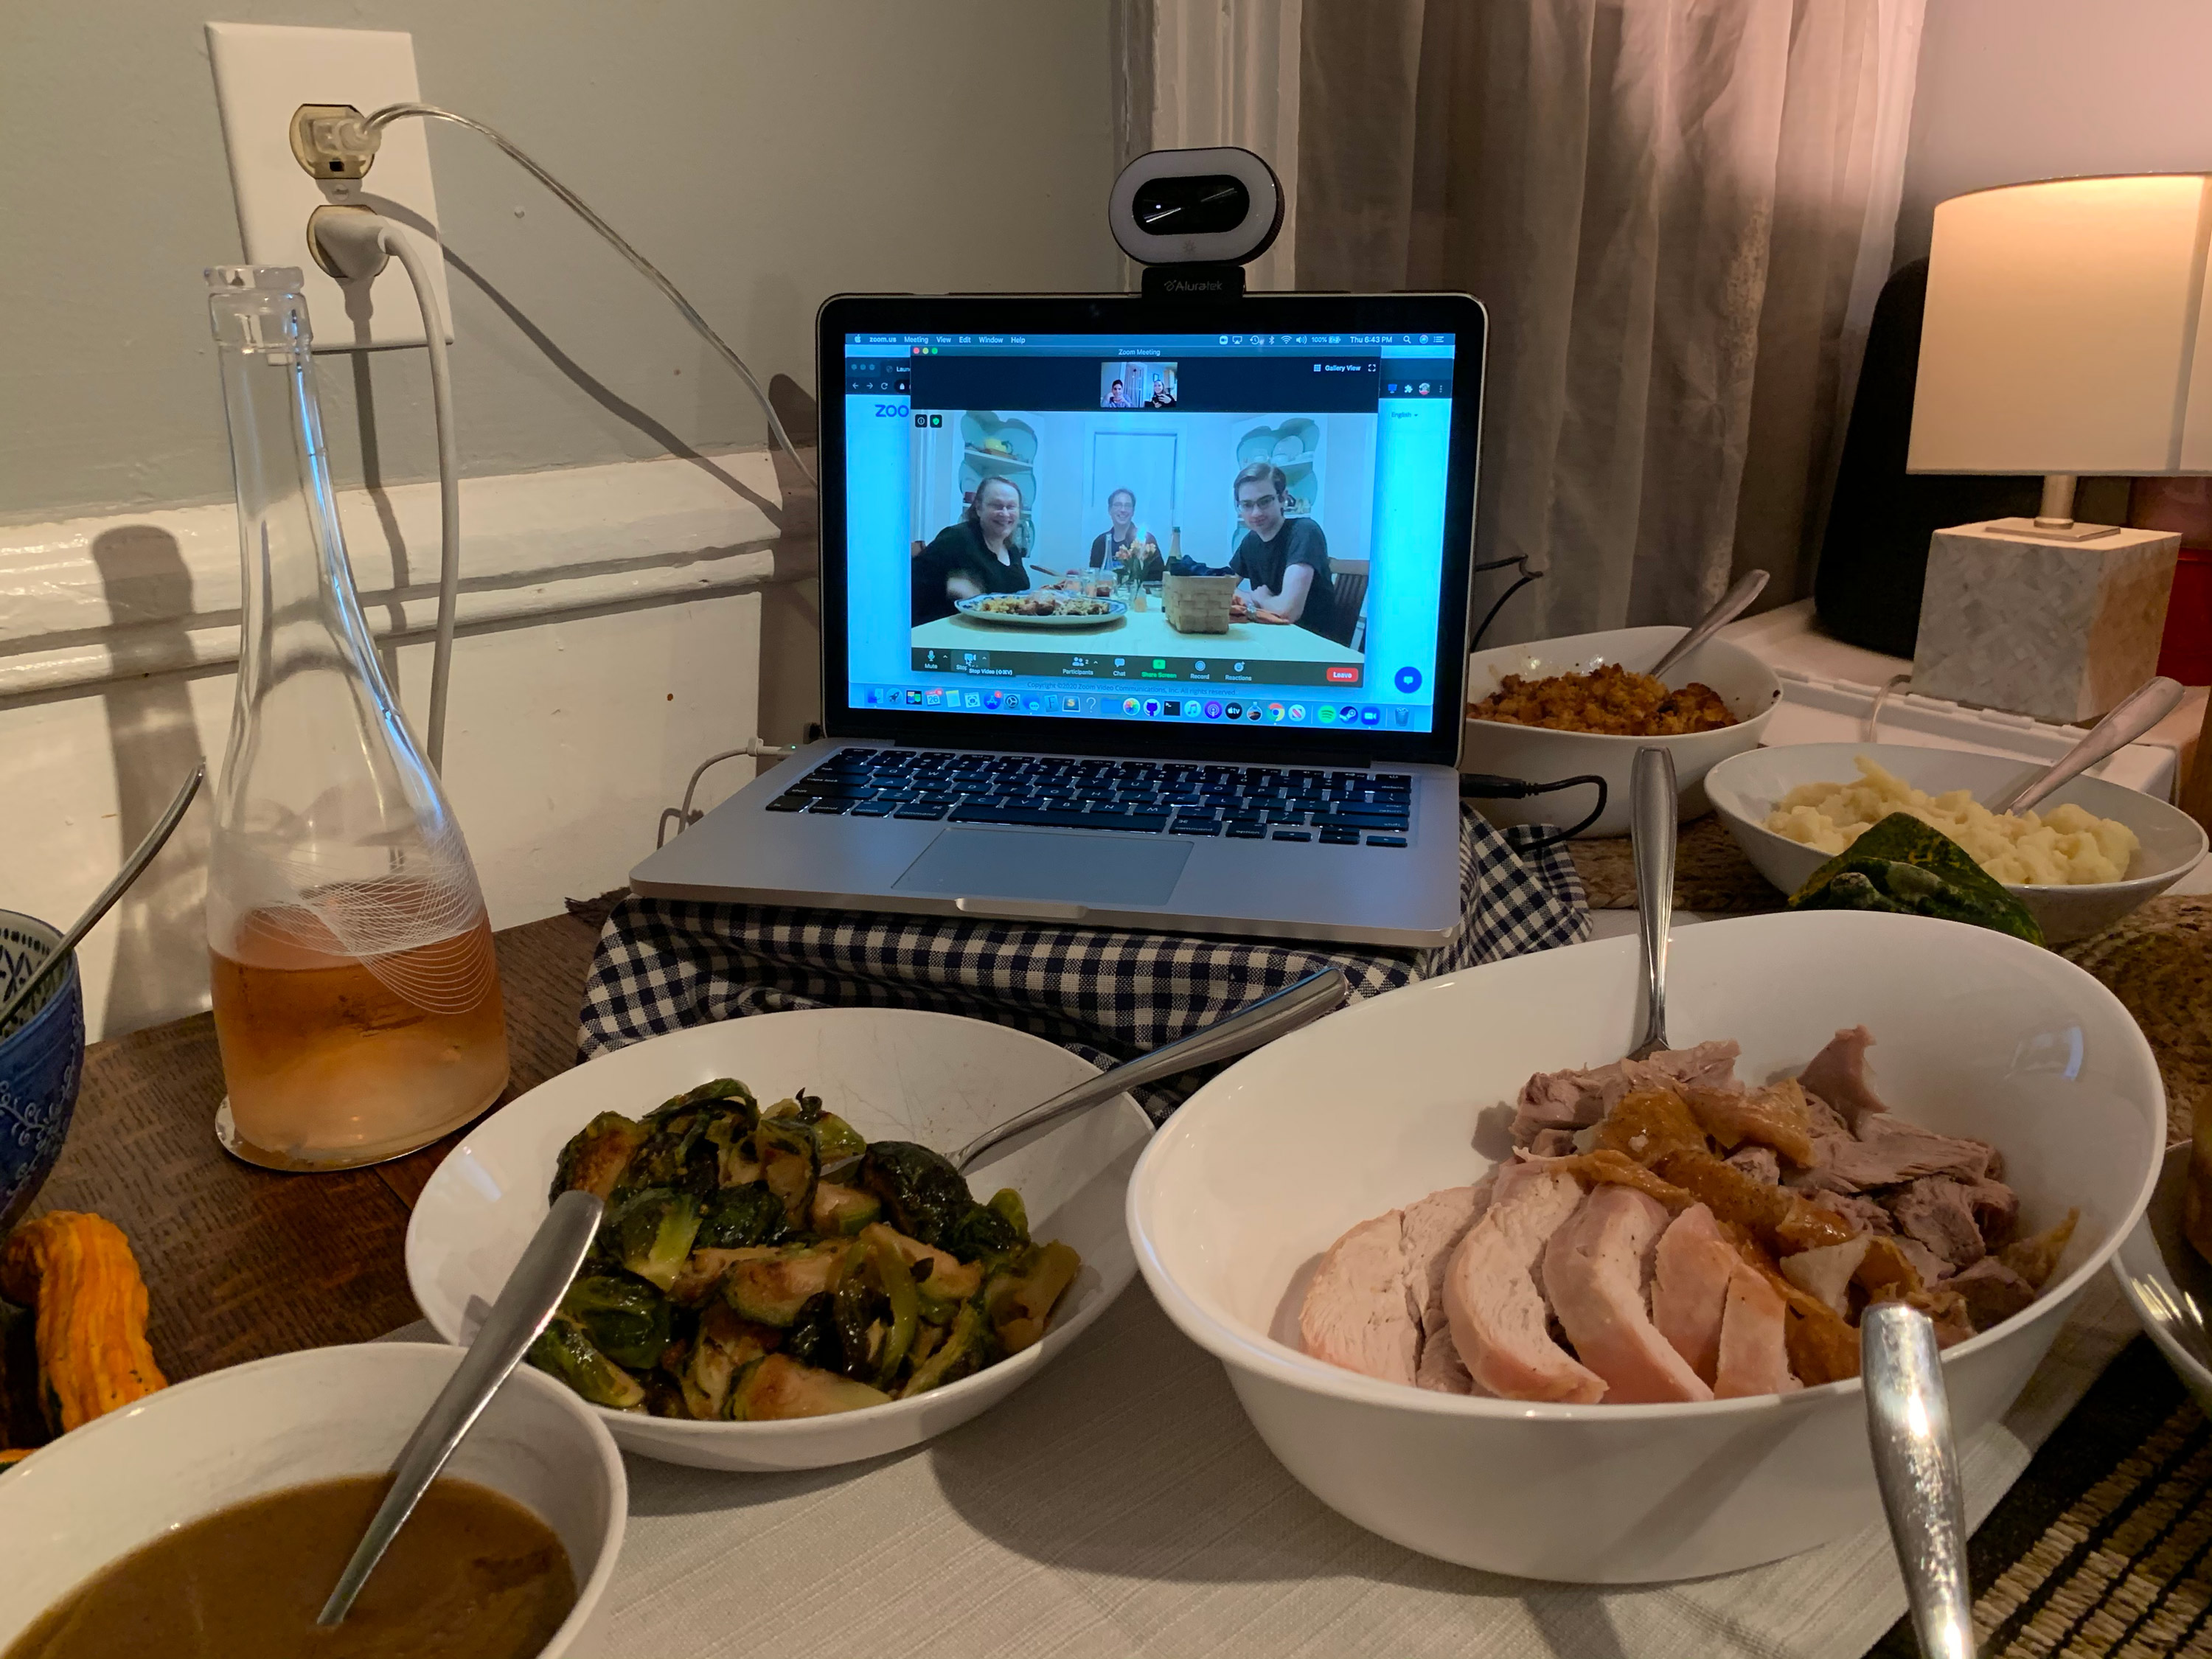 Thanksgiving looked a little different this year. Here's how people adapted across the country